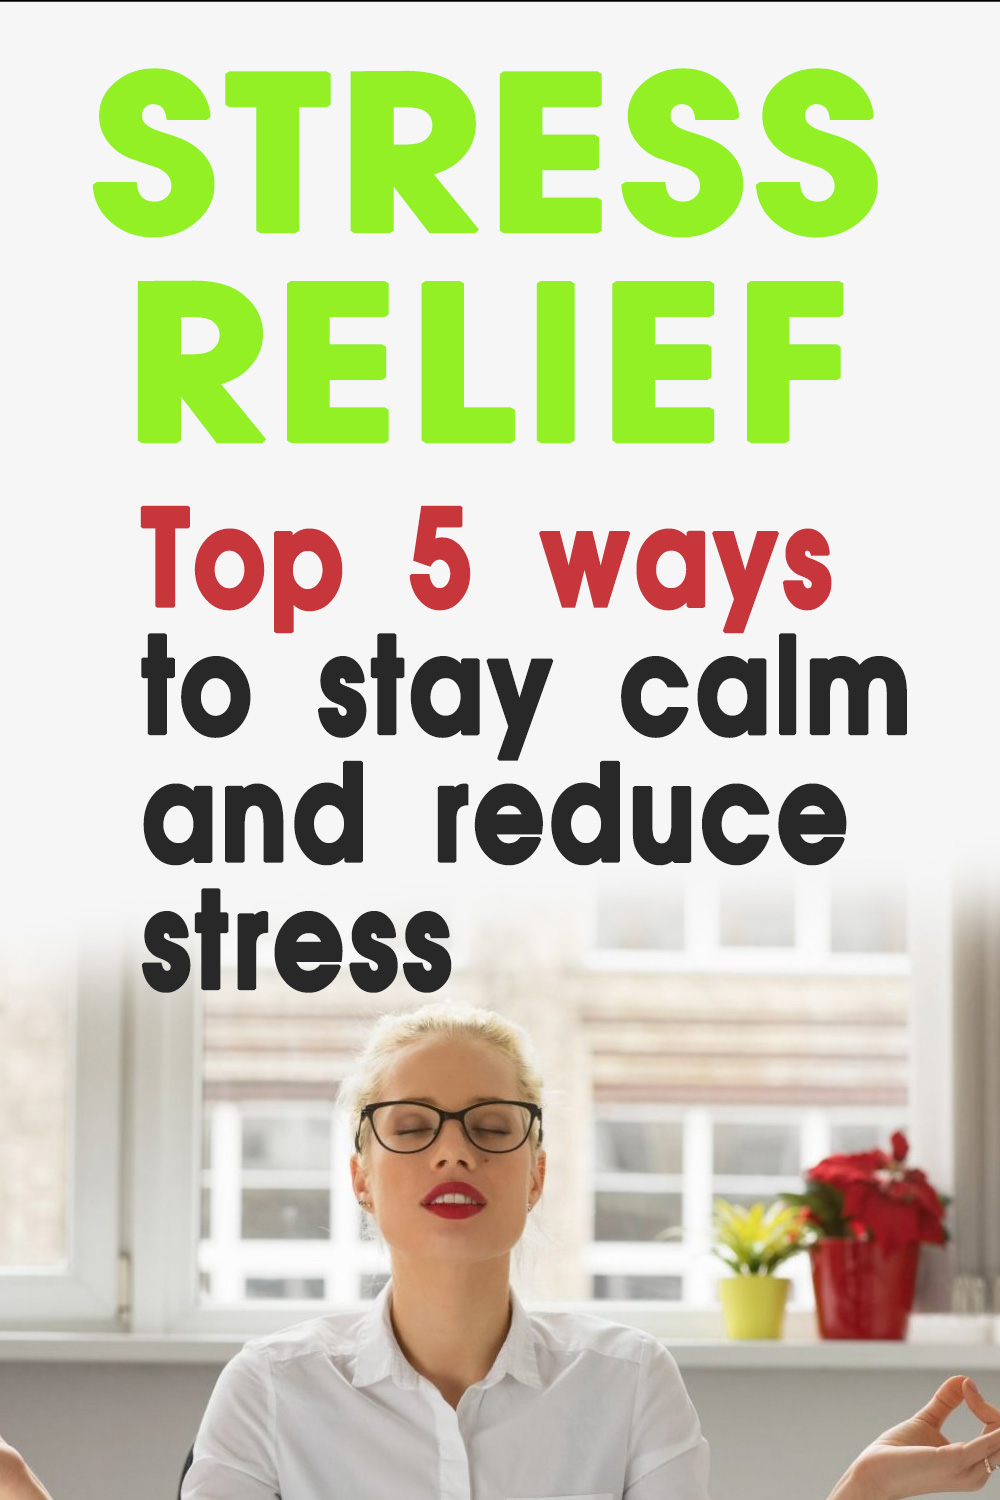 top 5 stress relief tips